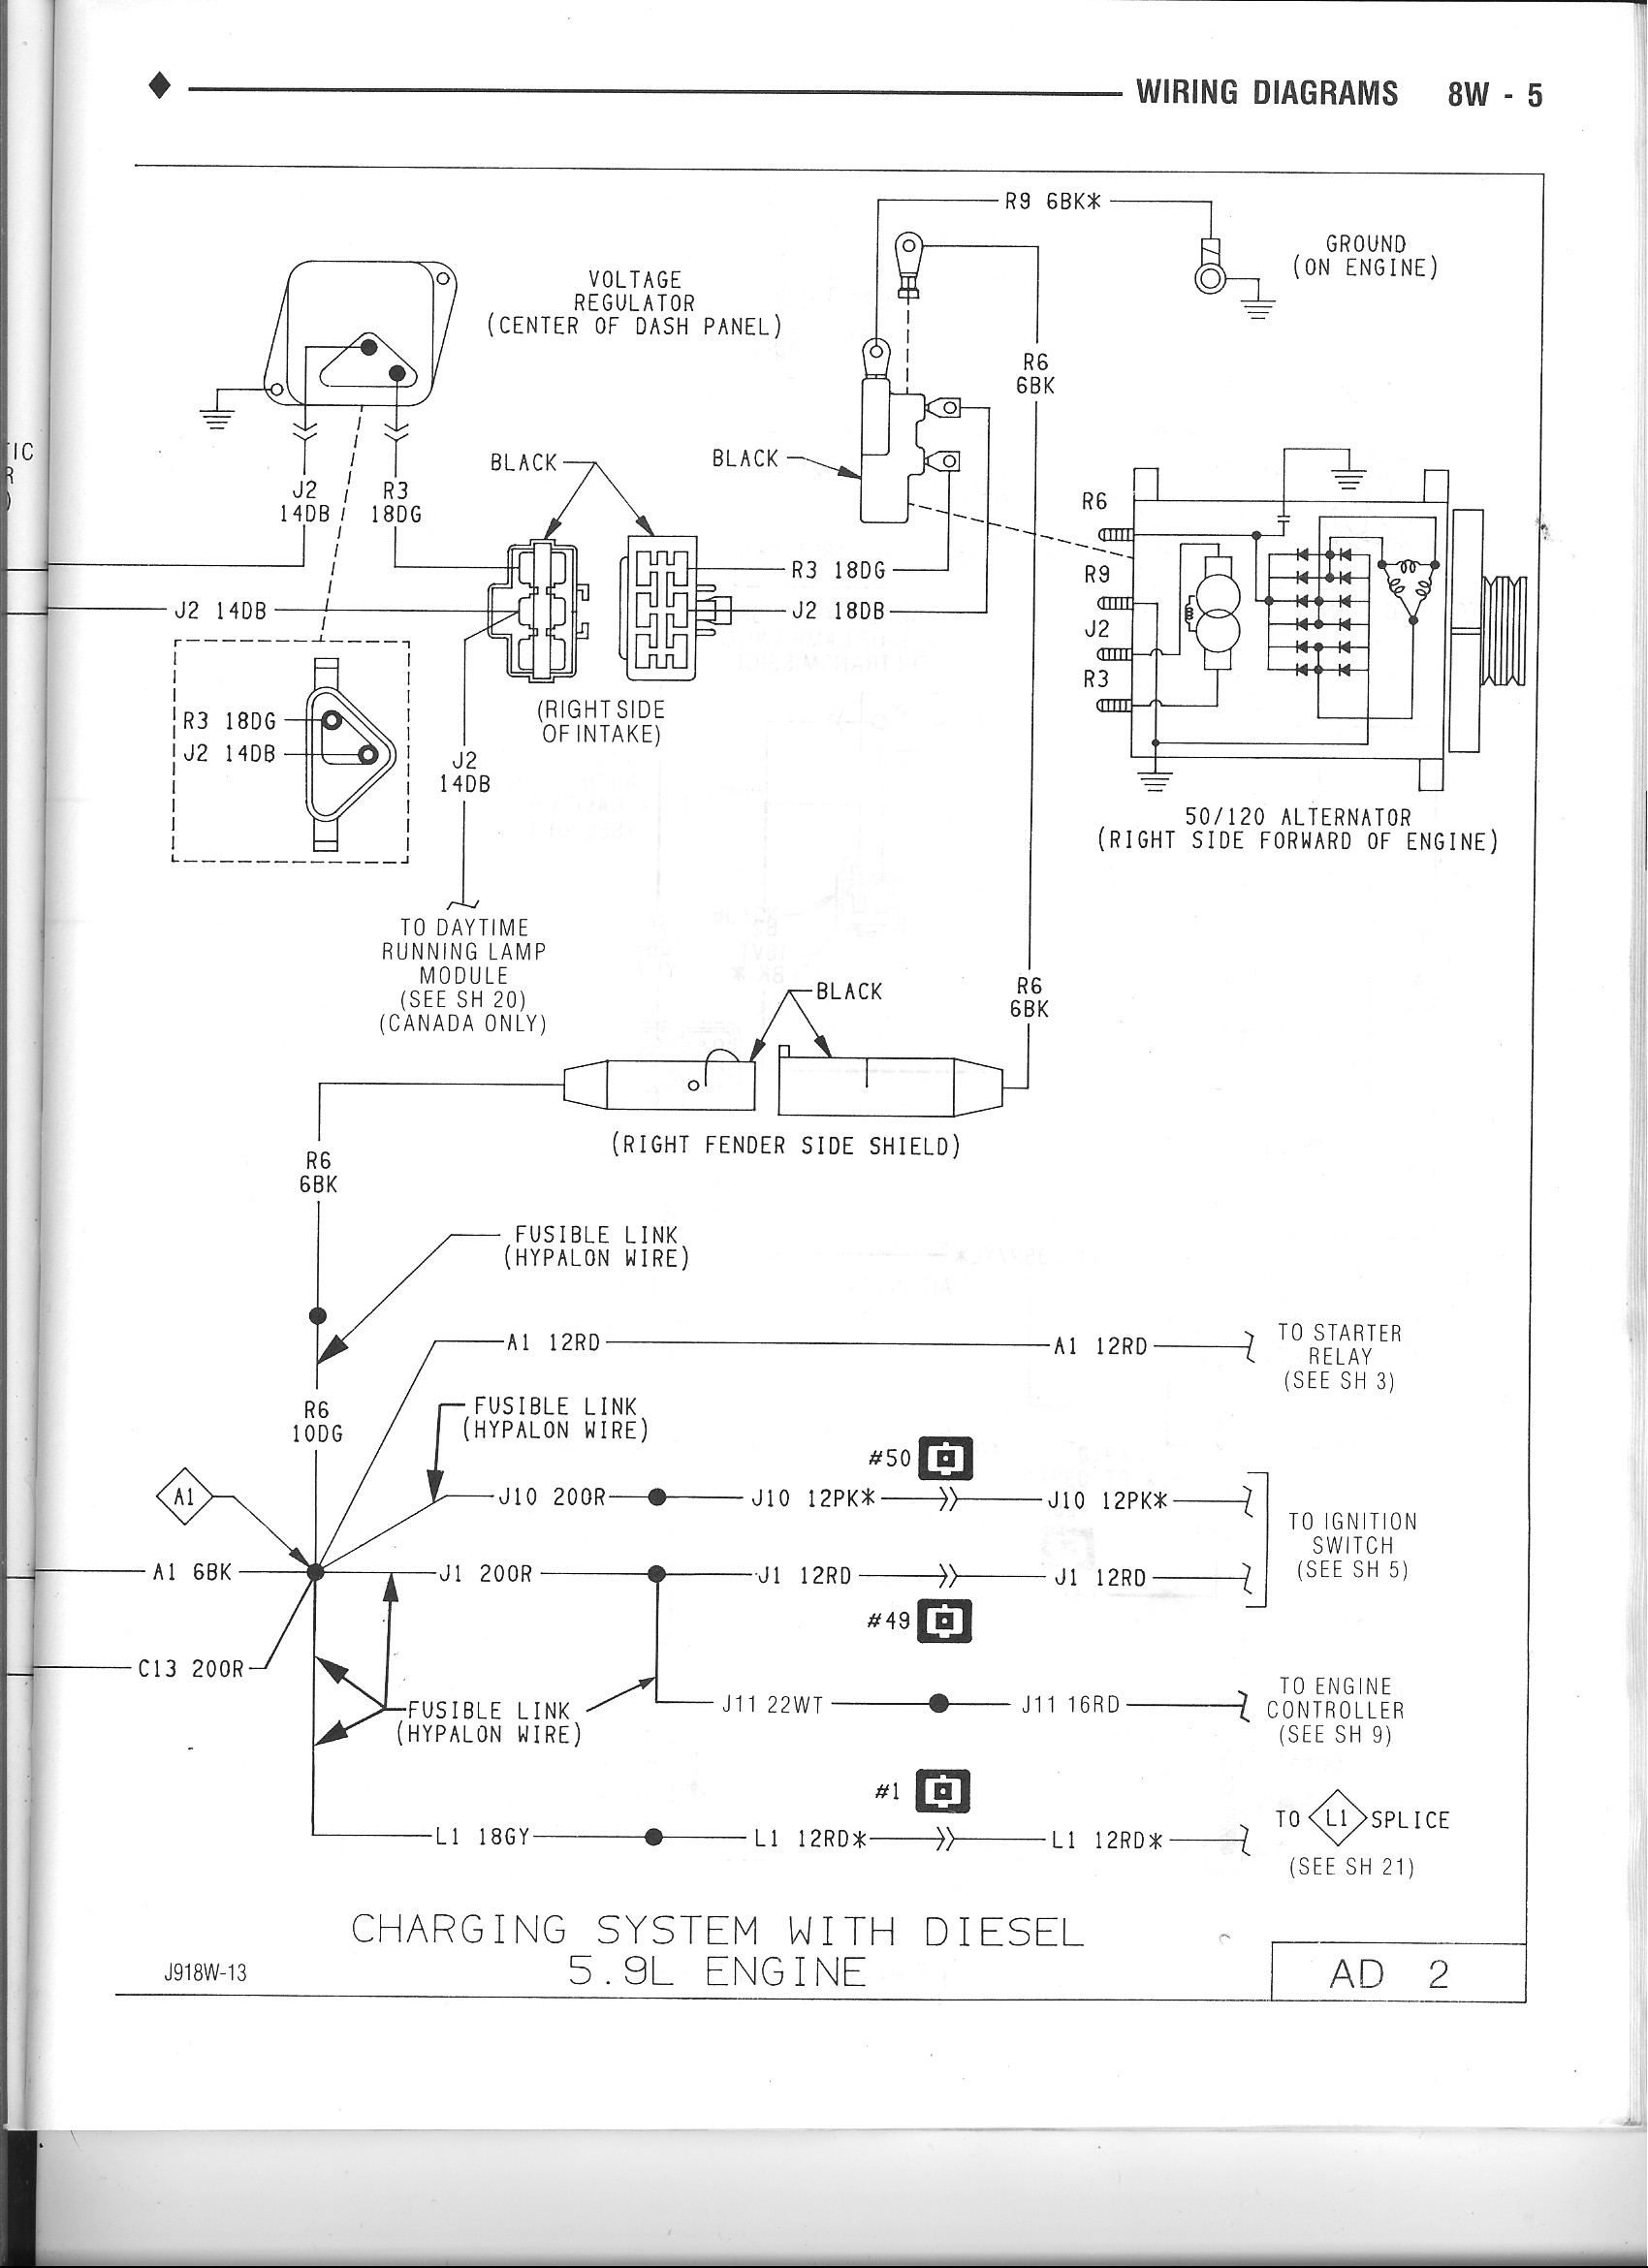 1990 Cummins Wiring Issue